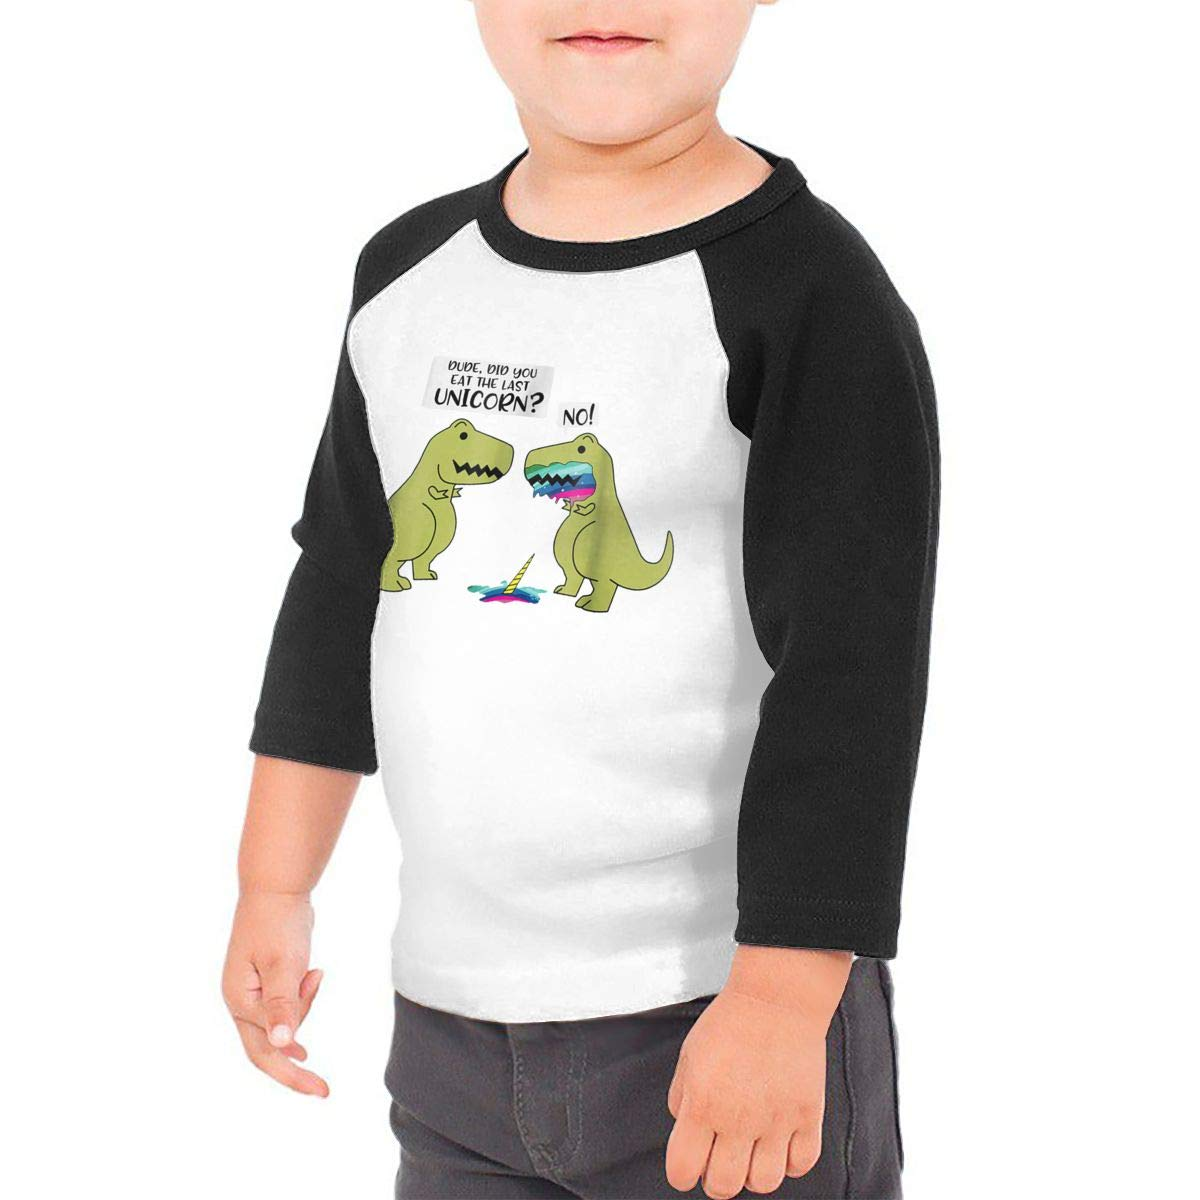 Dinosaur Kids Jersey Raglan T-Shirt Children 3//4 Sleeve Baseball Shirt Top